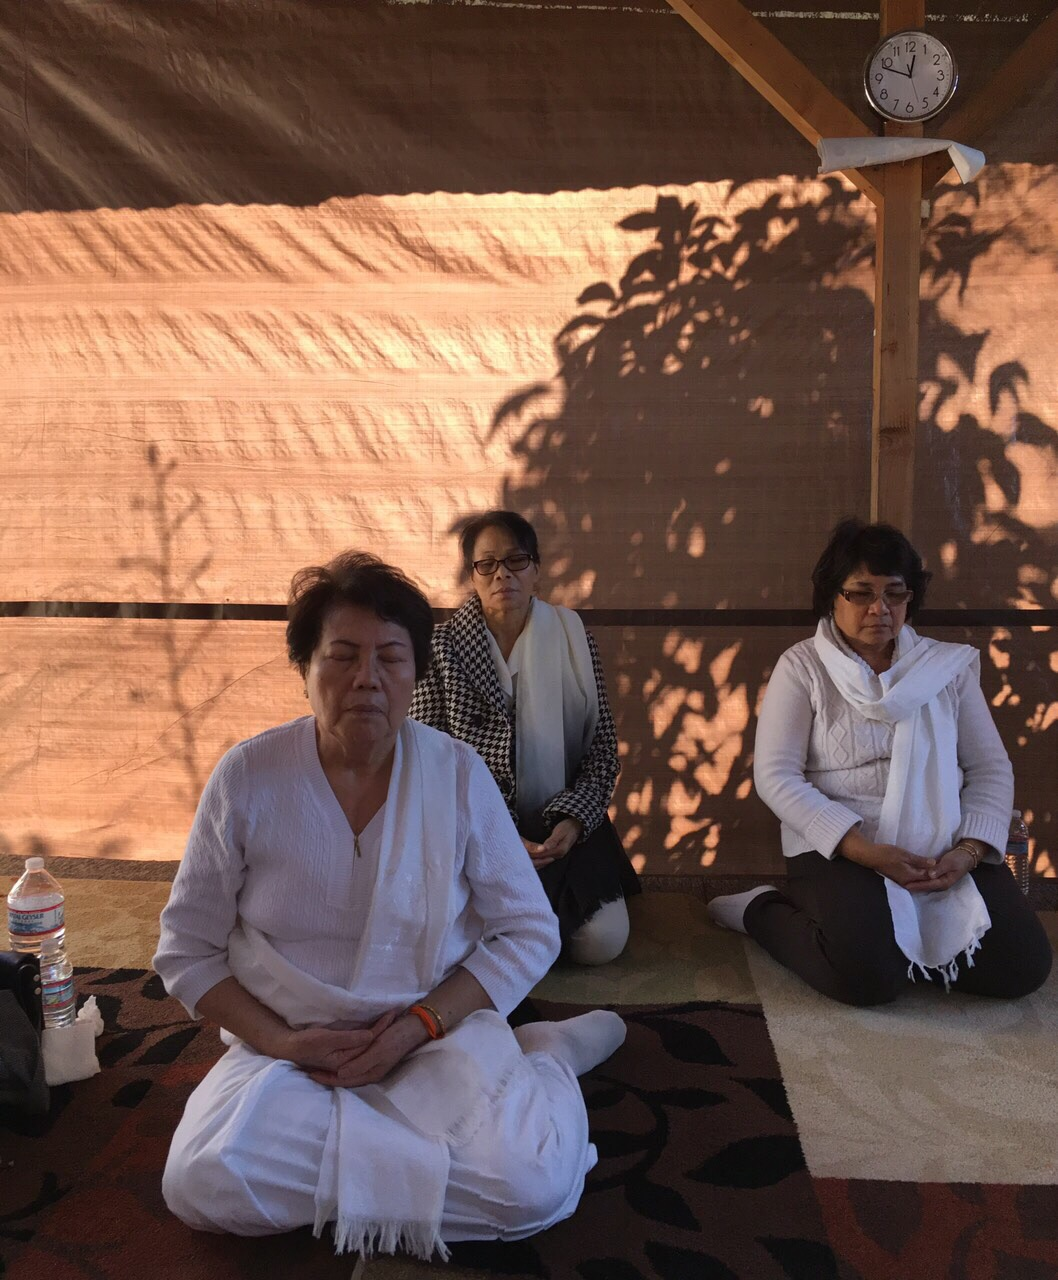 Buddhist from ventura come to retreat at monastery.